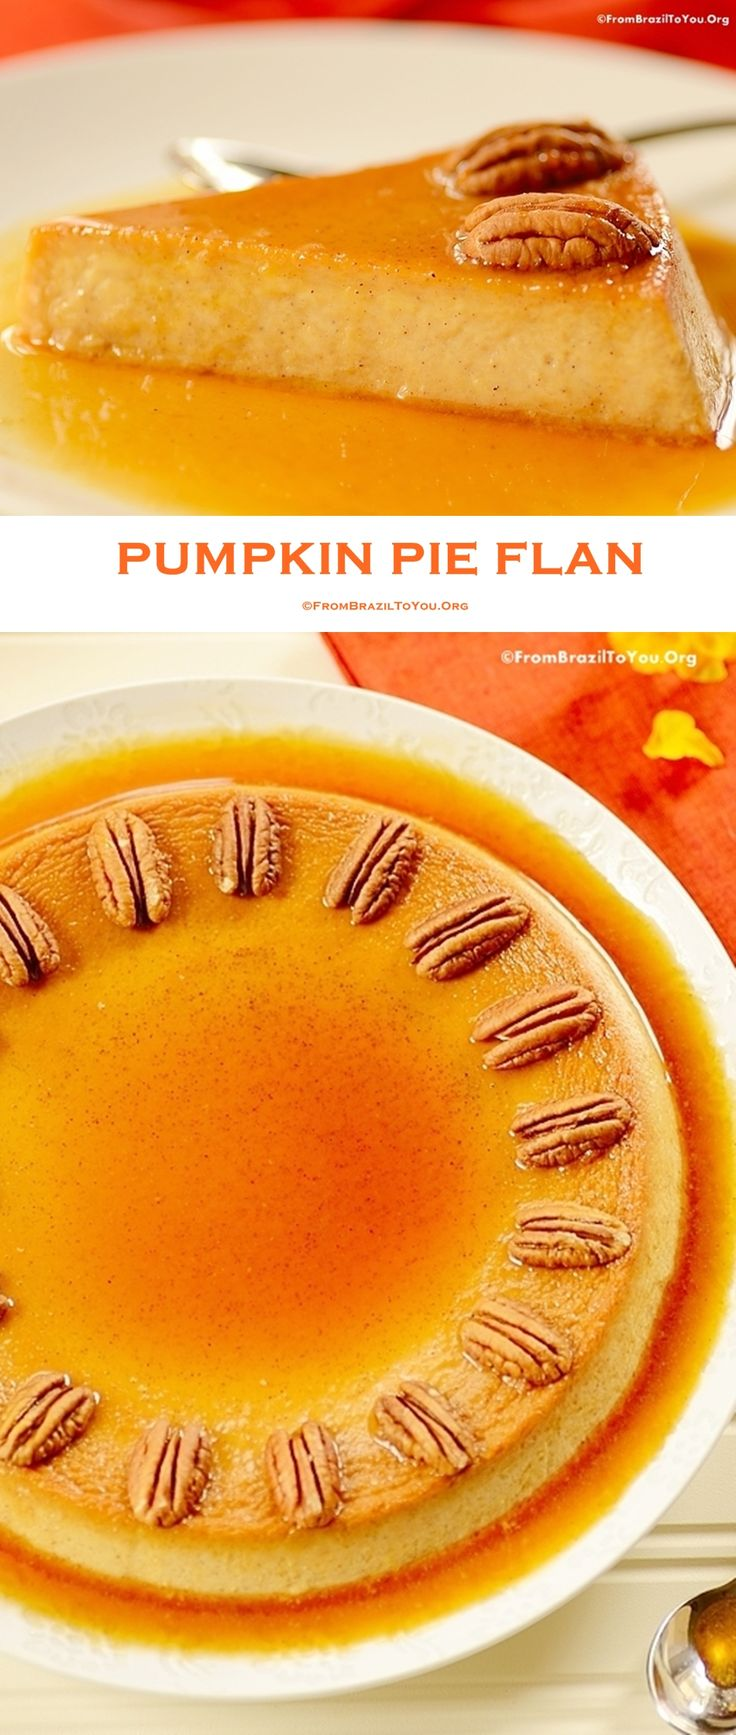 A step-by-step, delicious Pumpkin Pie Flan recipe  infused with spices, to celebrate the season.